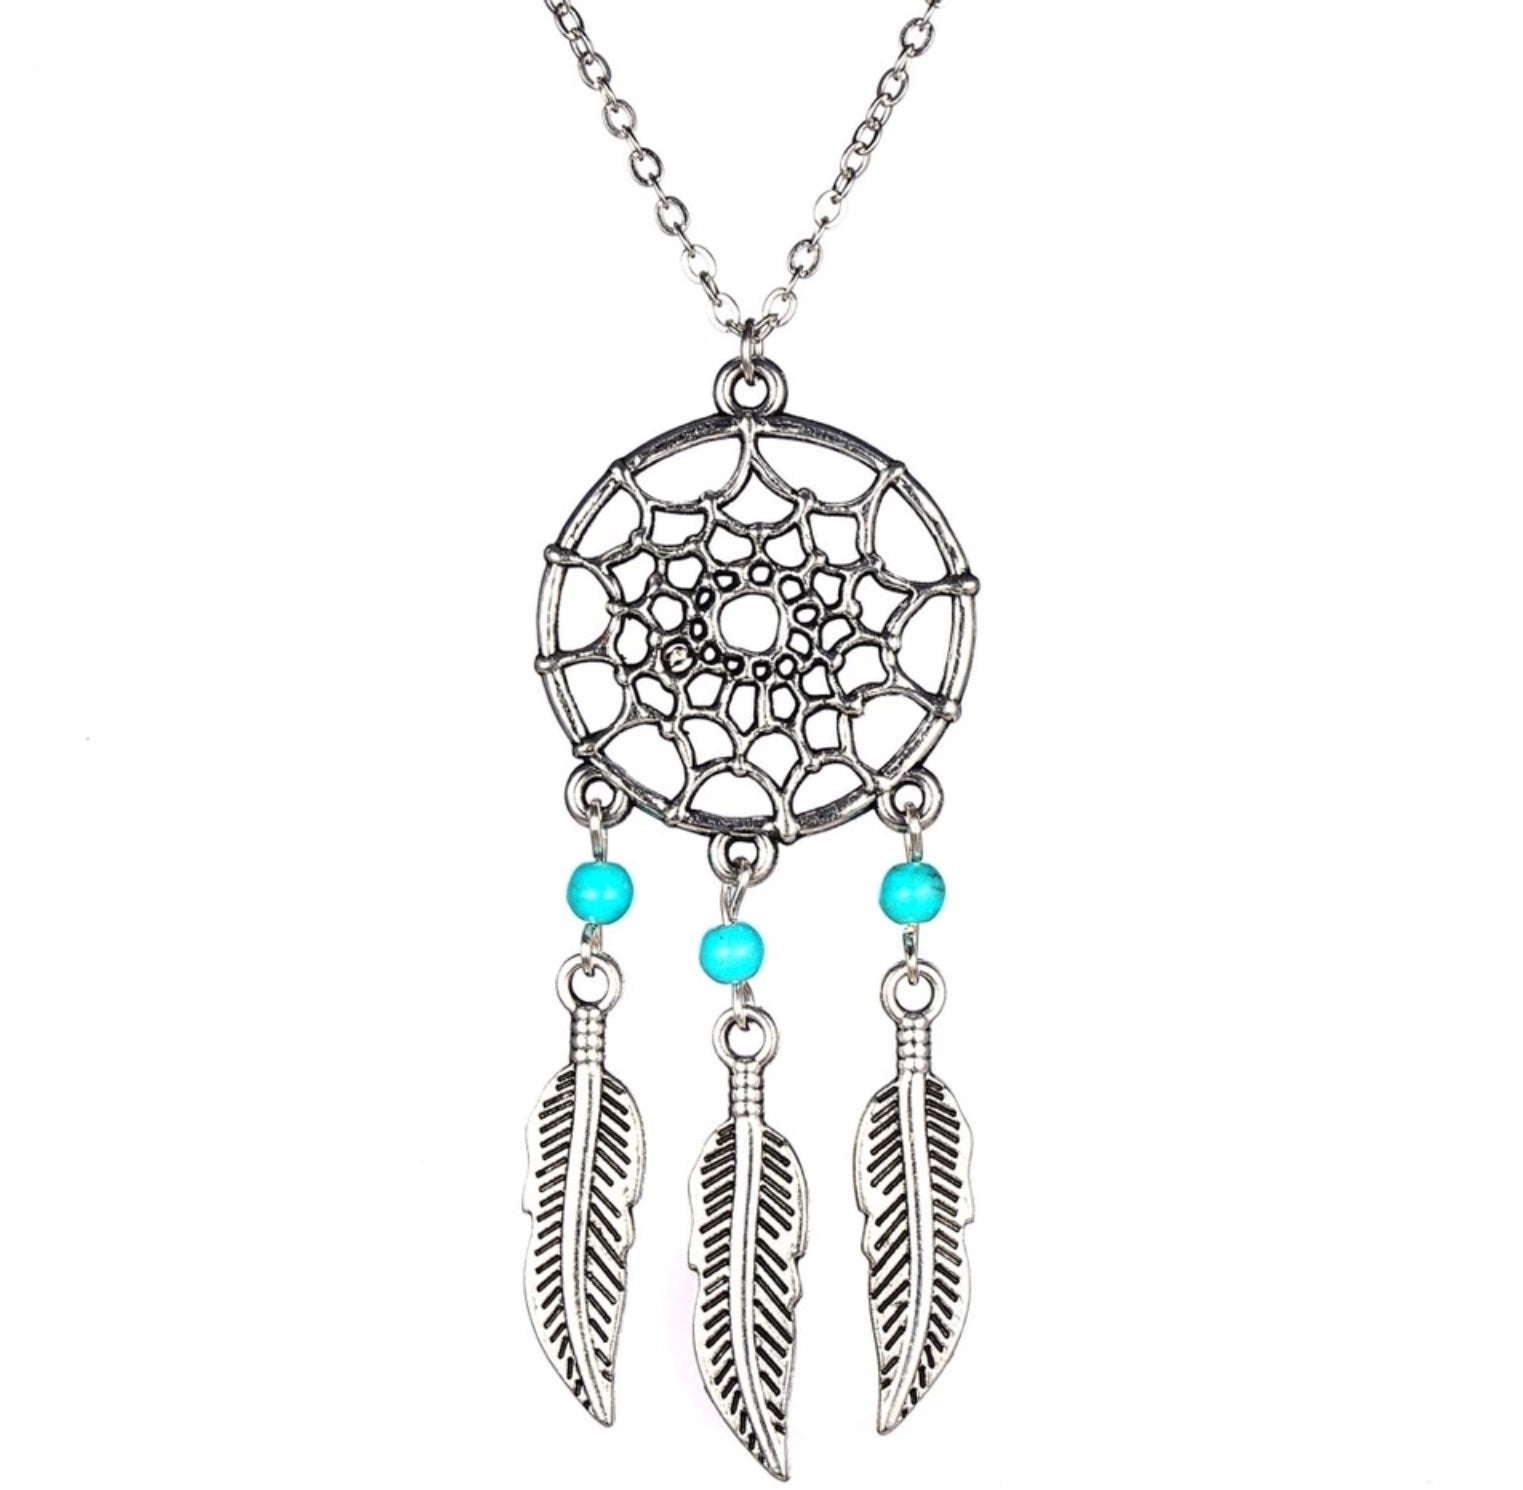 Dream catcher Necklace - TrippyKitty